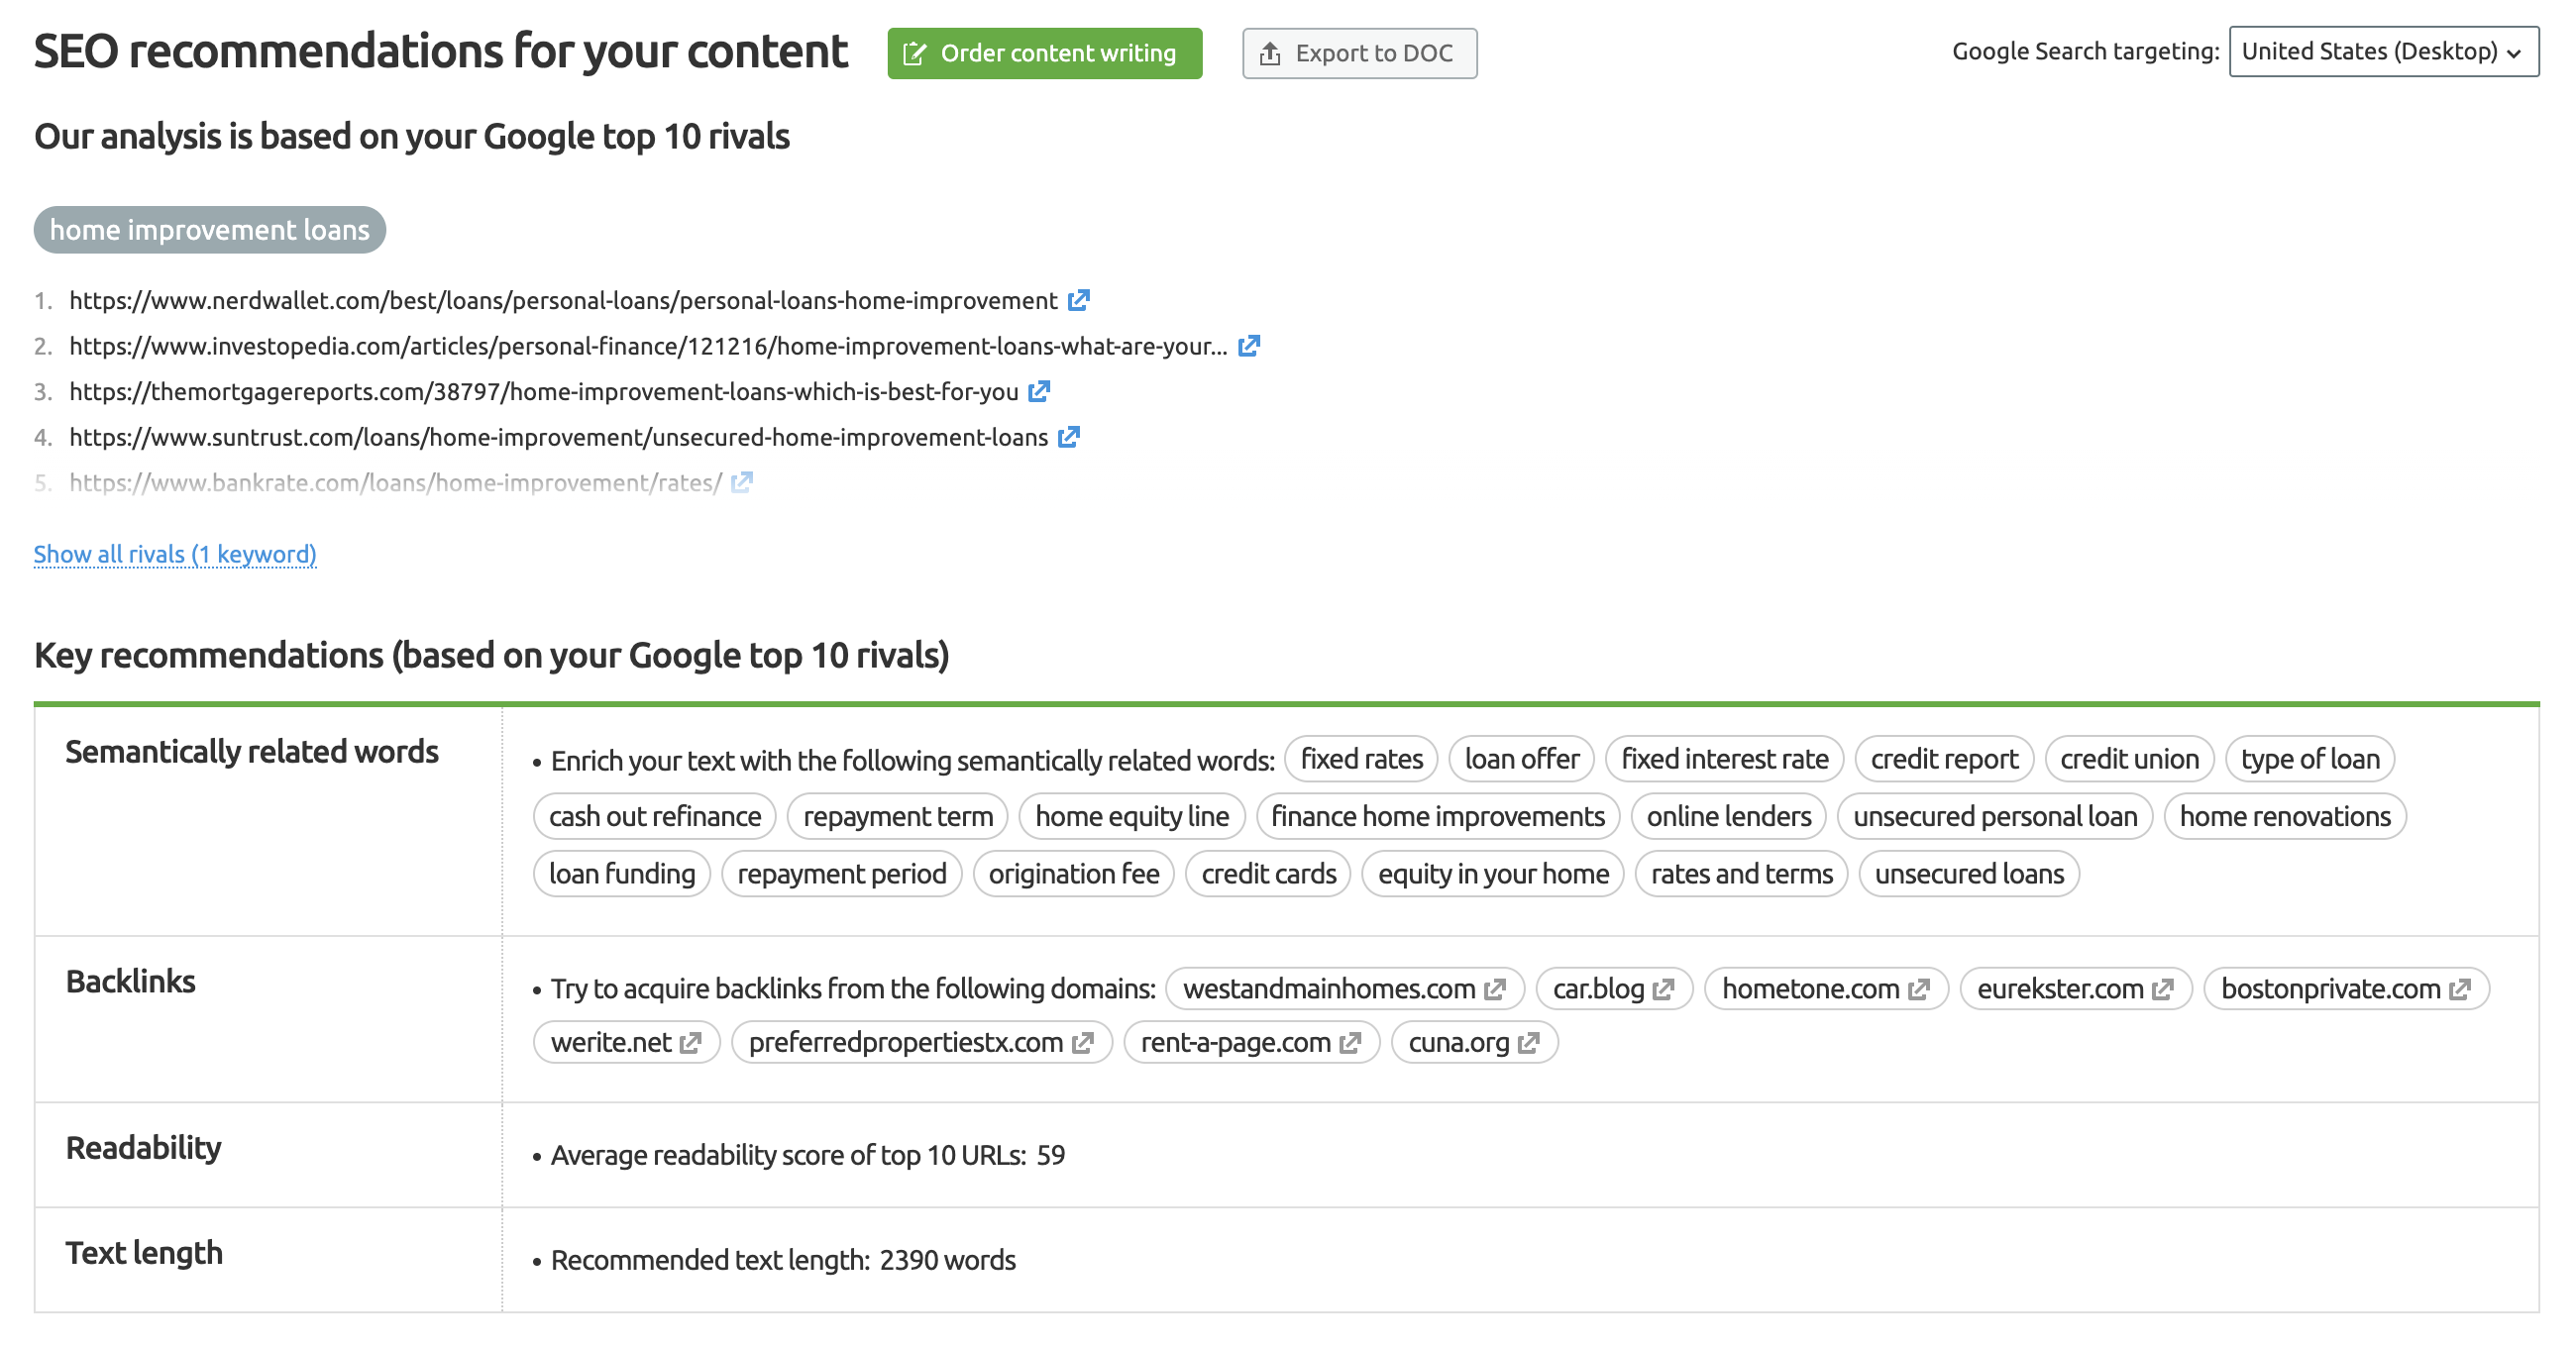 SEMrush SEO Content Template screenshot